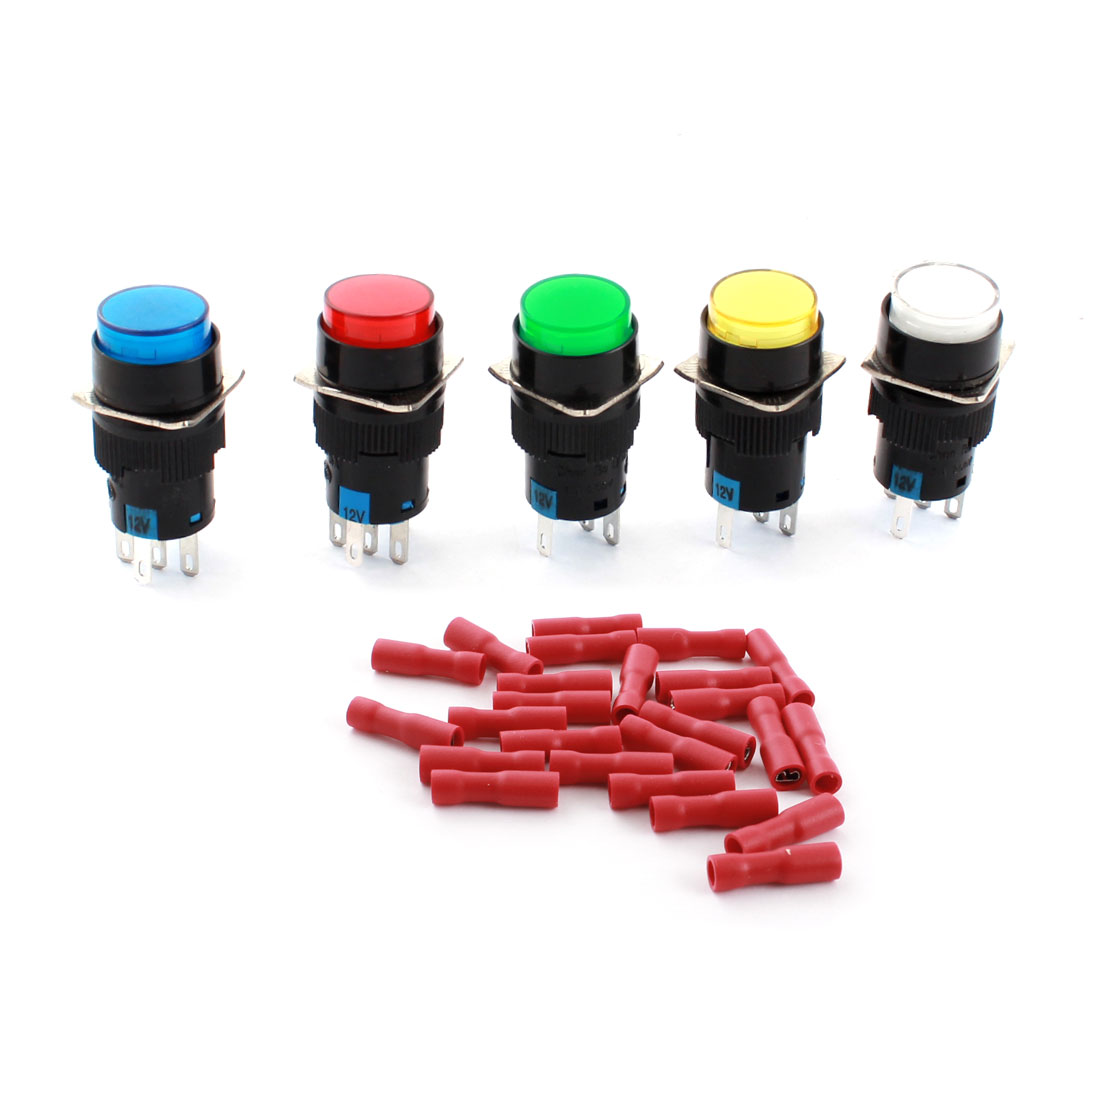 5PCS DC 12V Assorted Color Indicator Light Lamp 5Pins 16mm Threaded Panel Mounted SPDT Momentary Round Pushbutton Switch + 25pcs Crimp Connectors